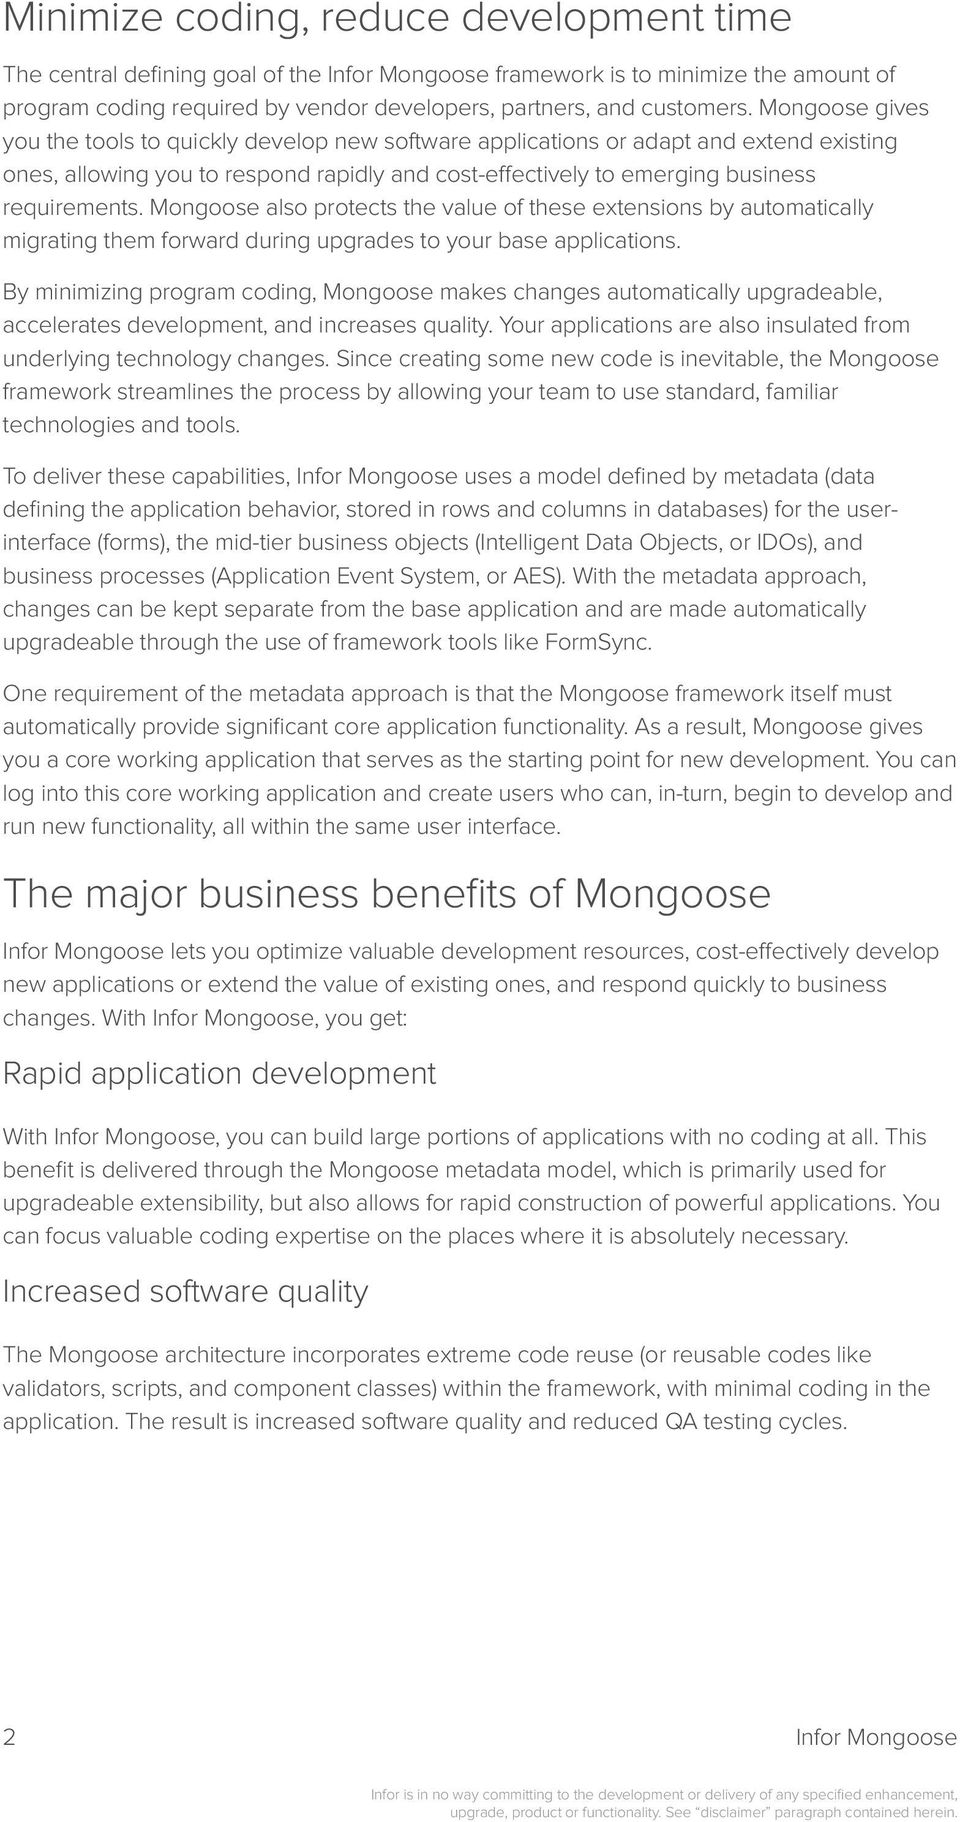 Mongoose also protects the value of these extensions by automatically migrating them forward during upgrades to your base applications.